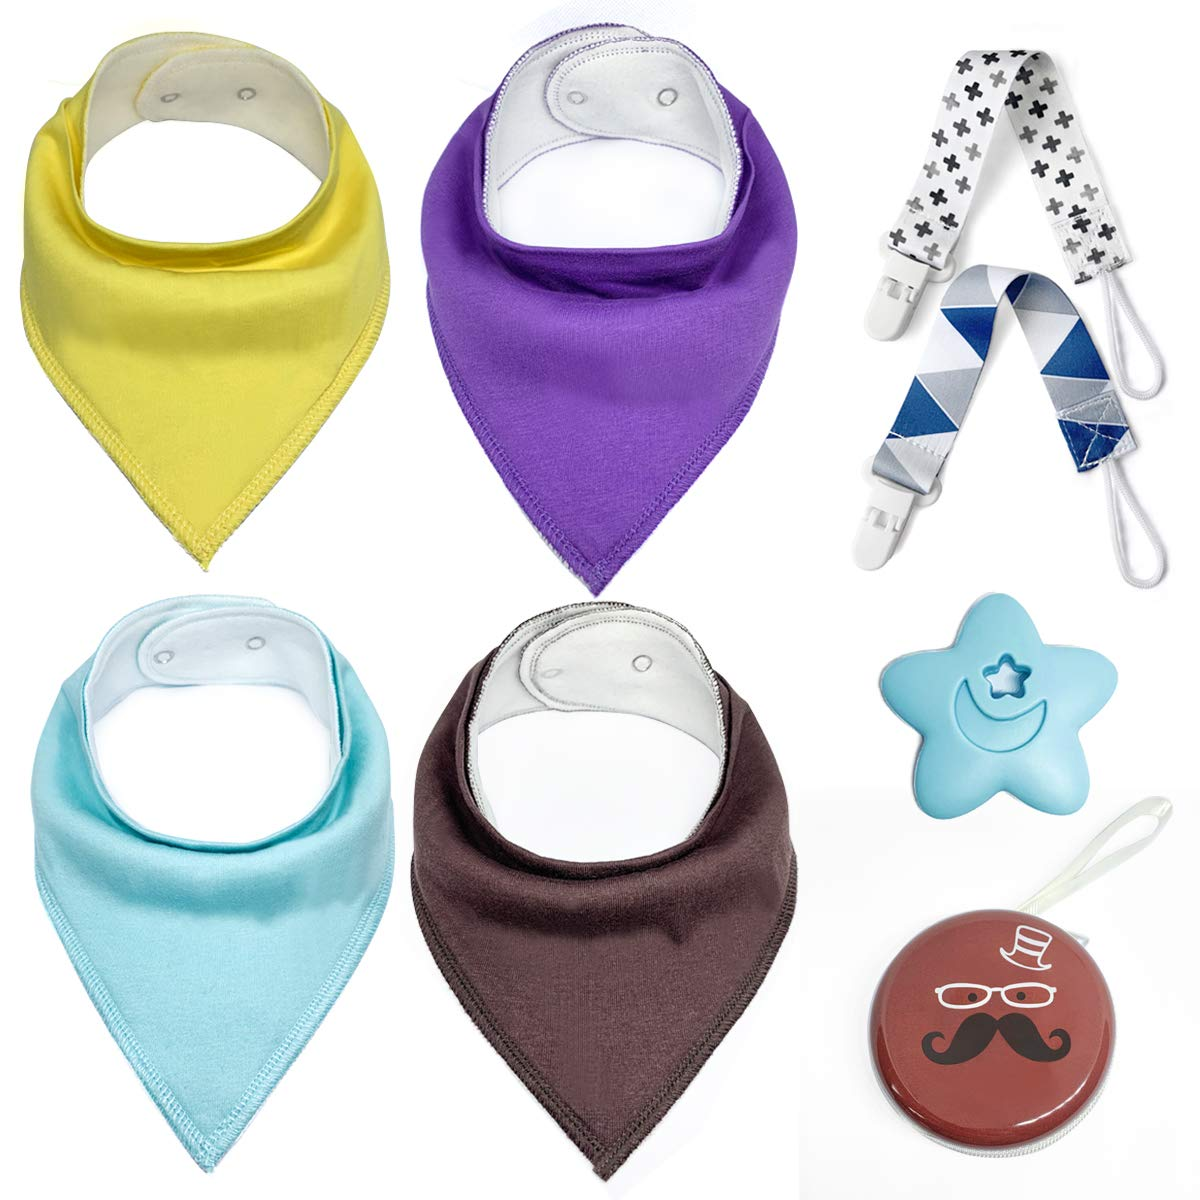 4 Packs Infant Bibs Teether 2 Packs Pacifier Clips Pacifier Holder Case Baby Bandana Drool Bibs Set